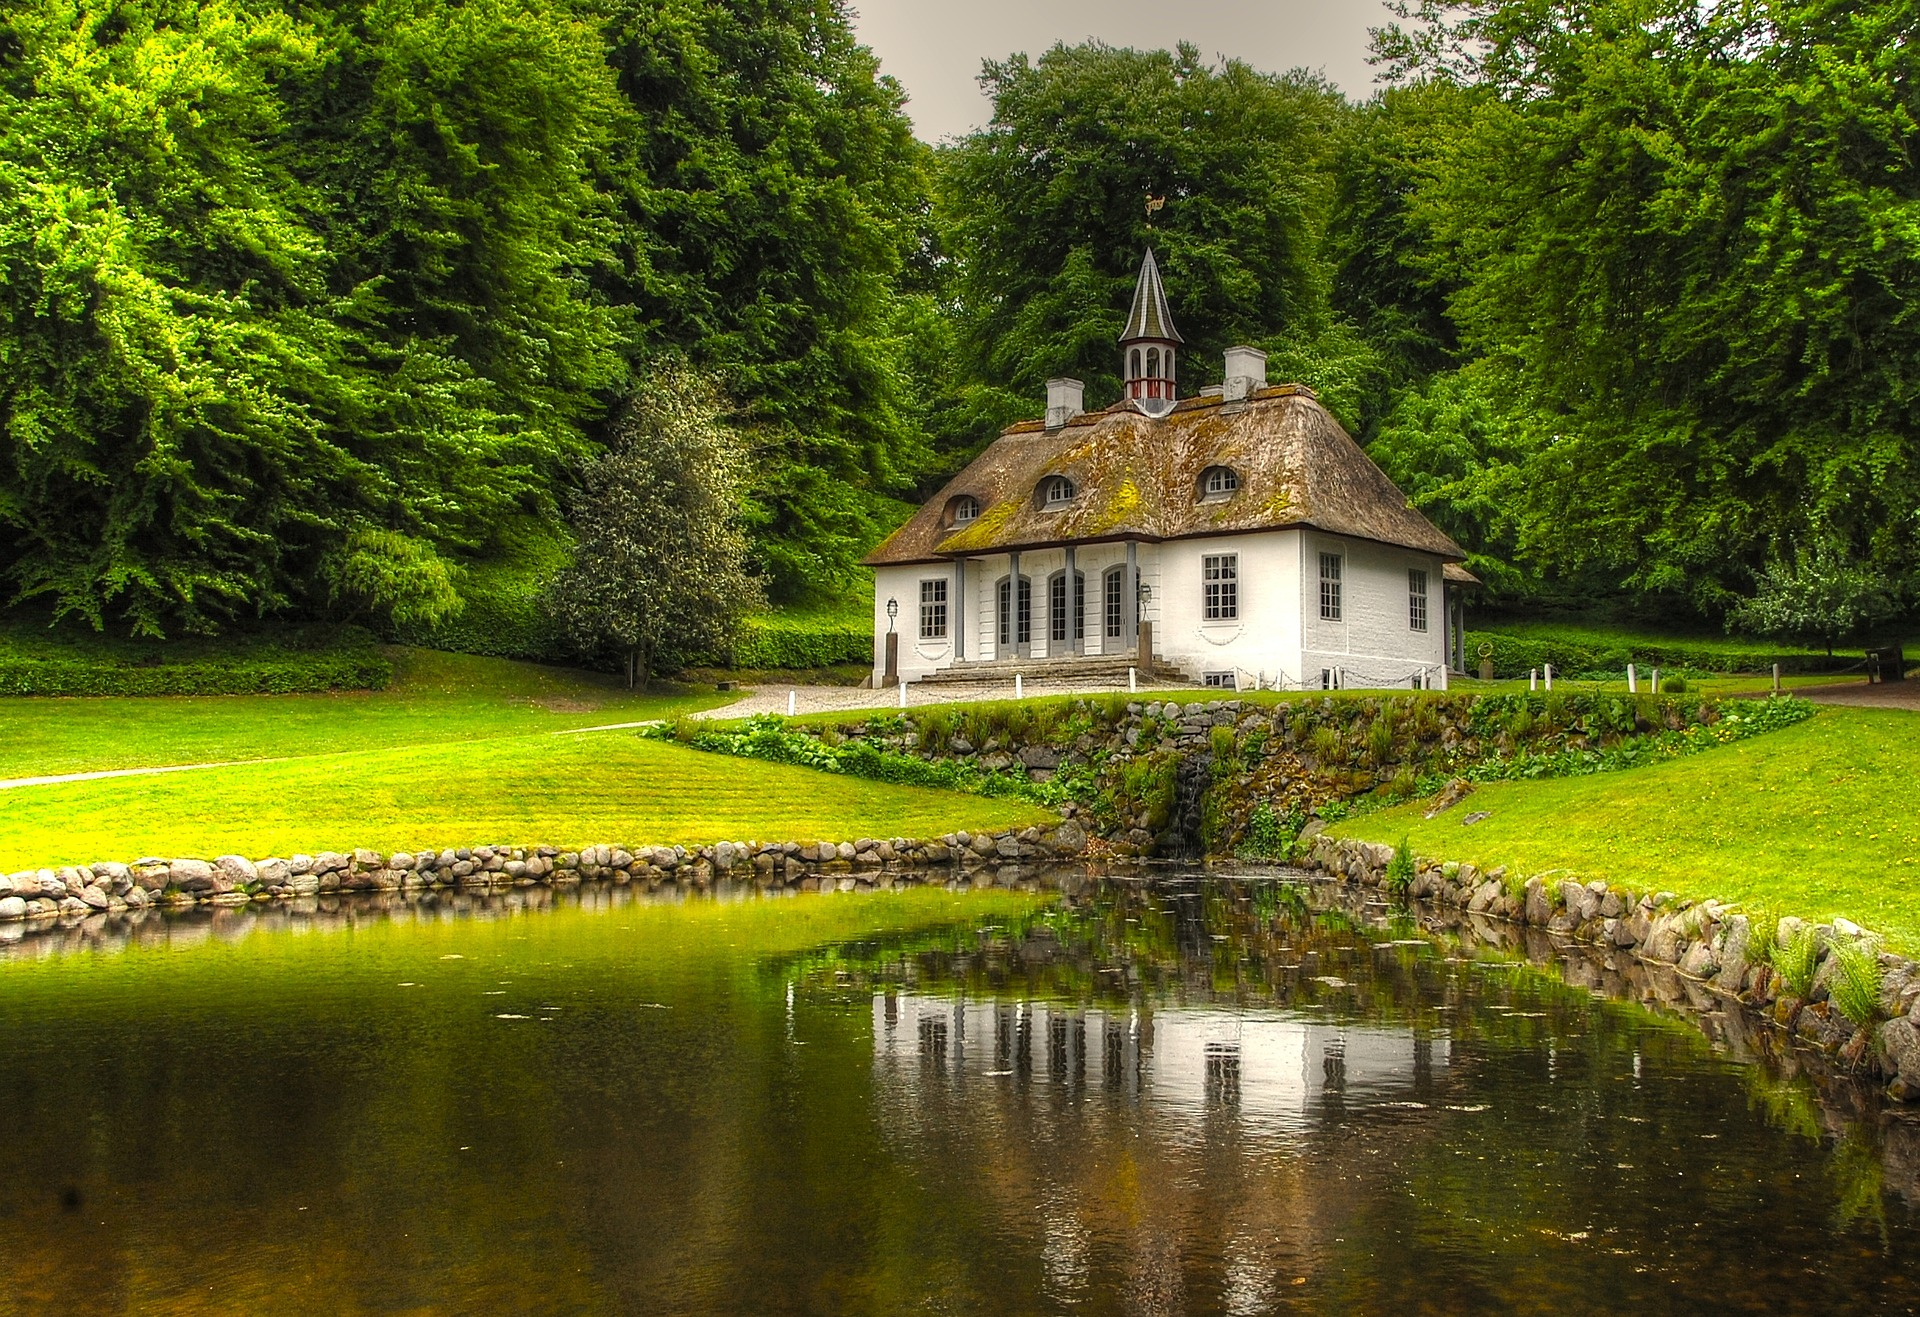 The Fantastic Things to Do in Denmark and Travel Packages